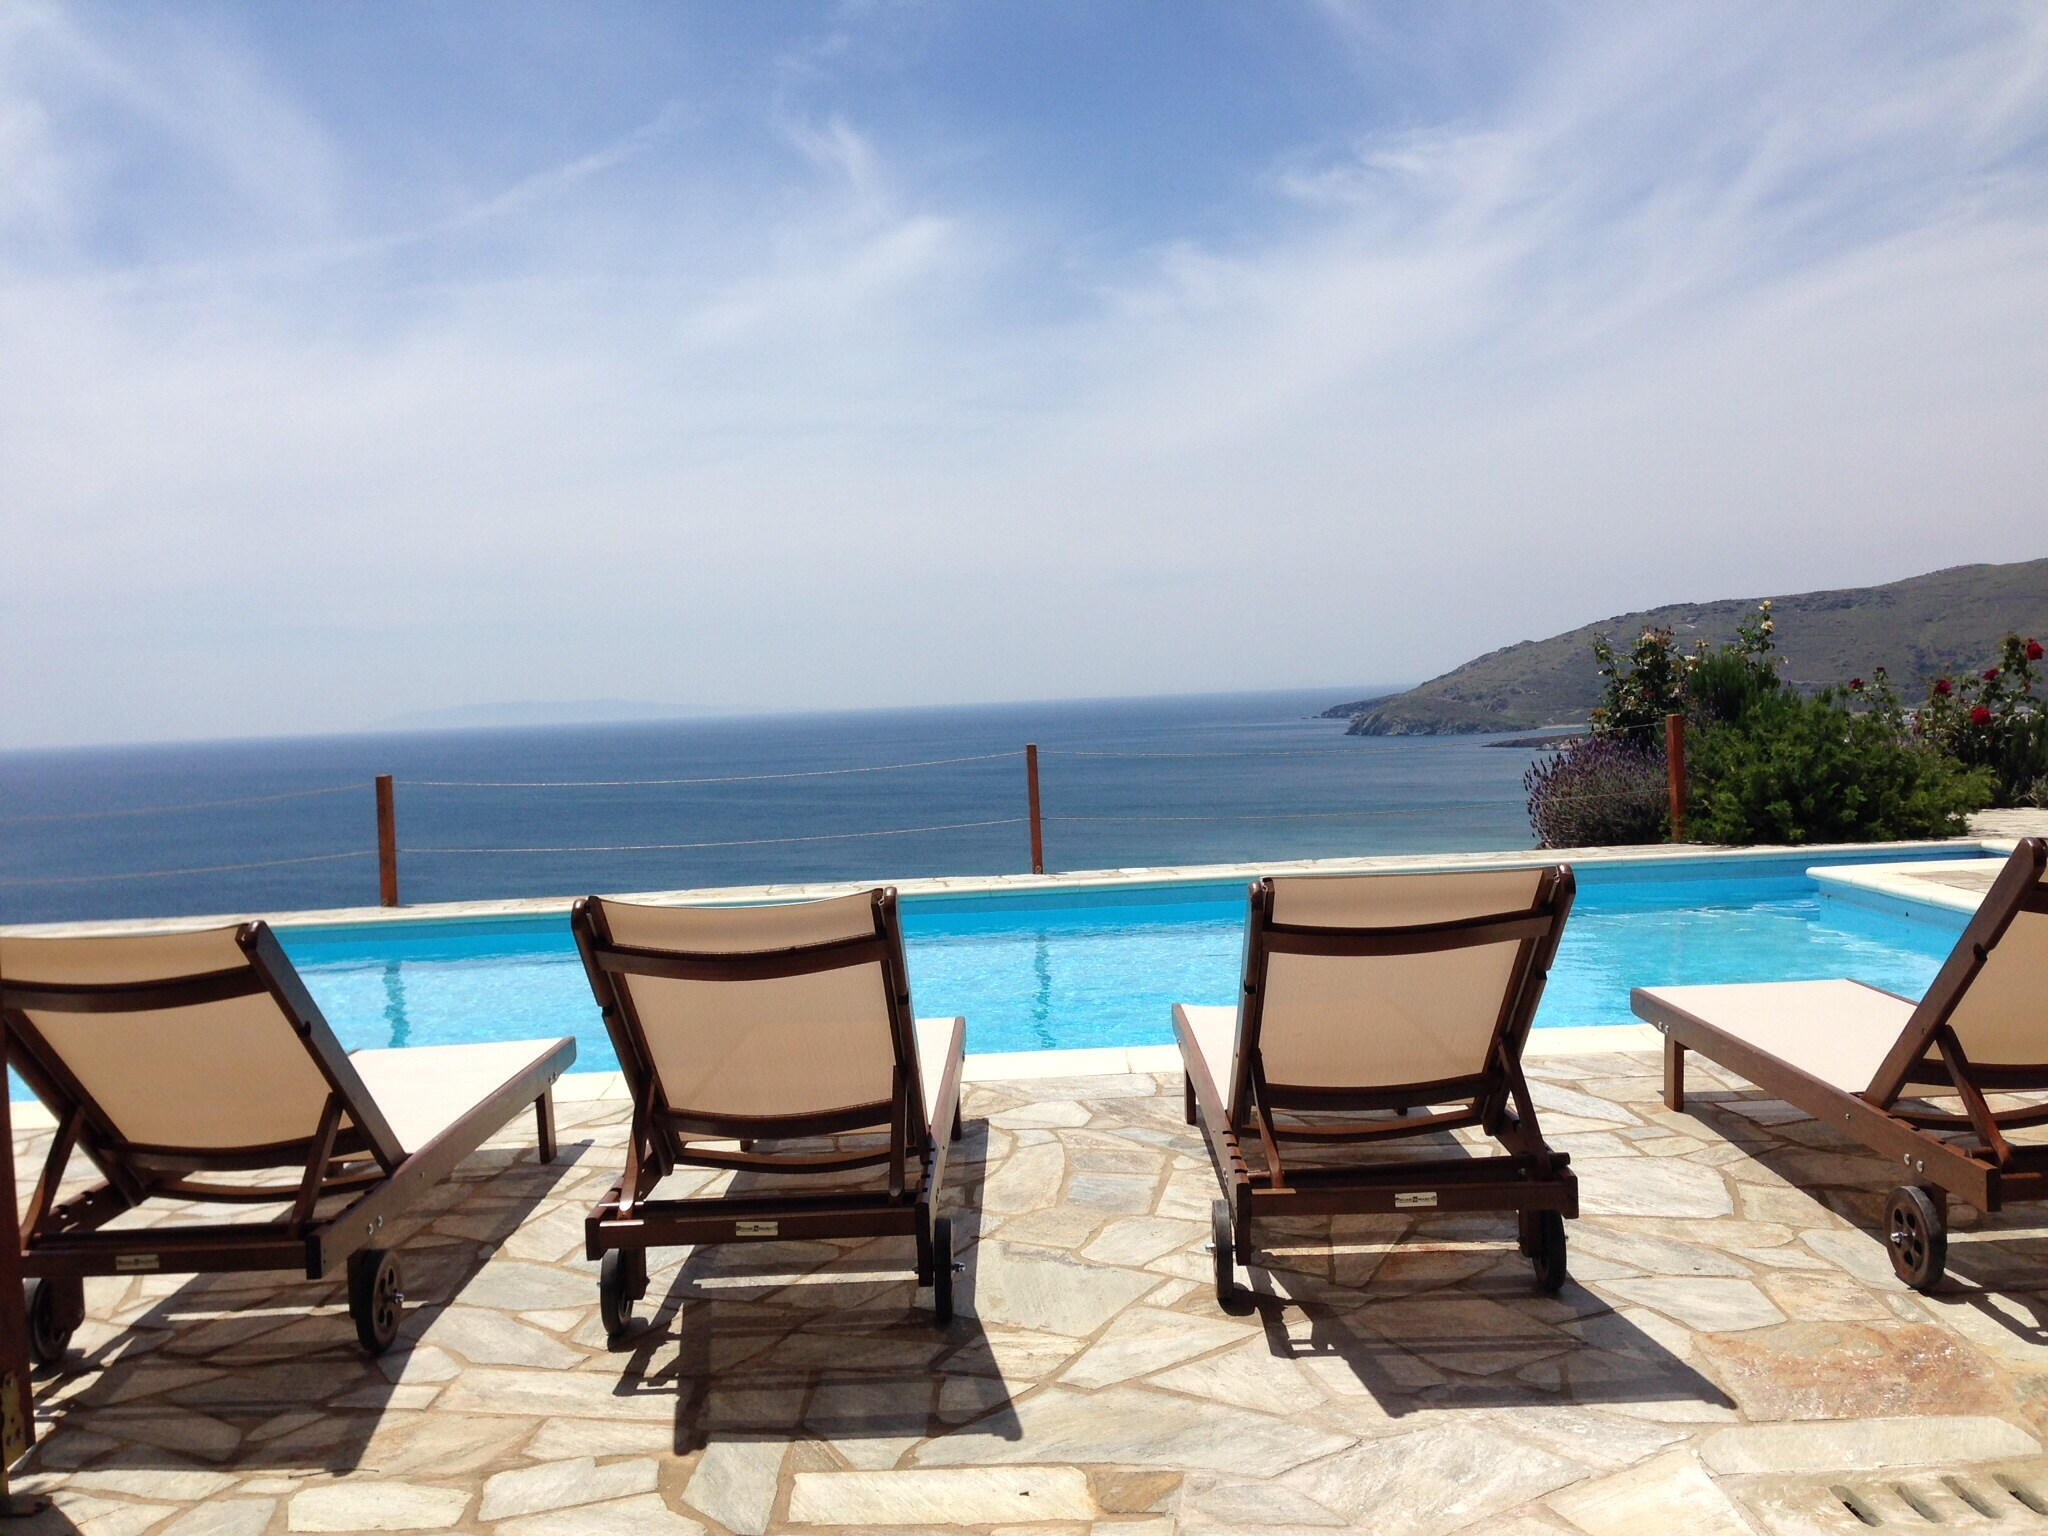 Property Image 2 - Cliffside villa with amazing views